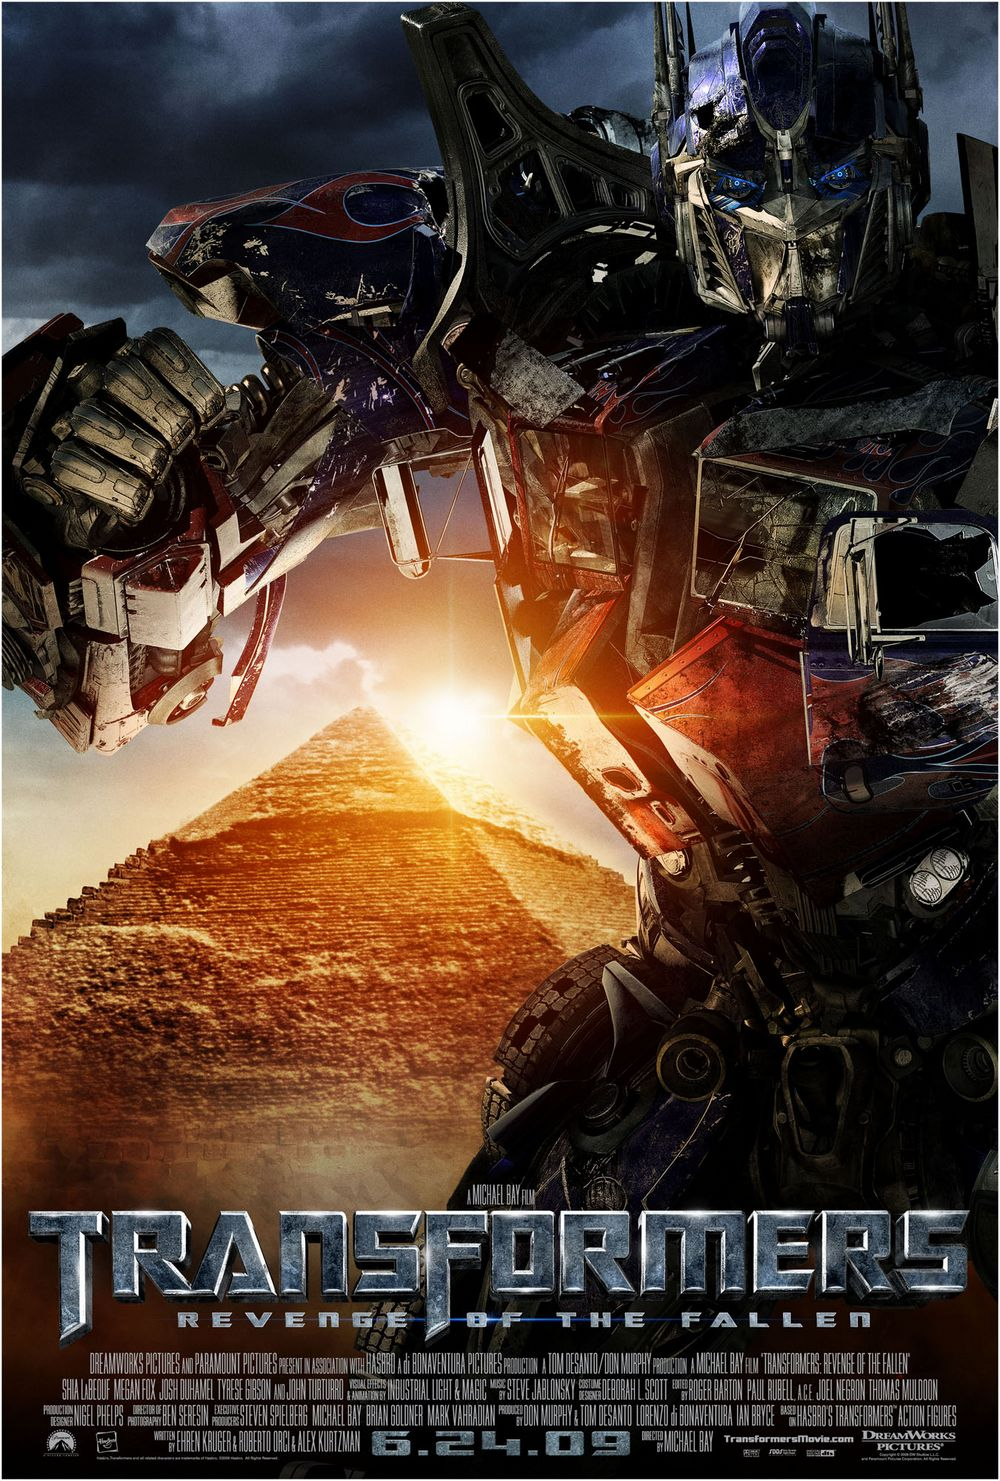 Transformers 2 hd cool poster